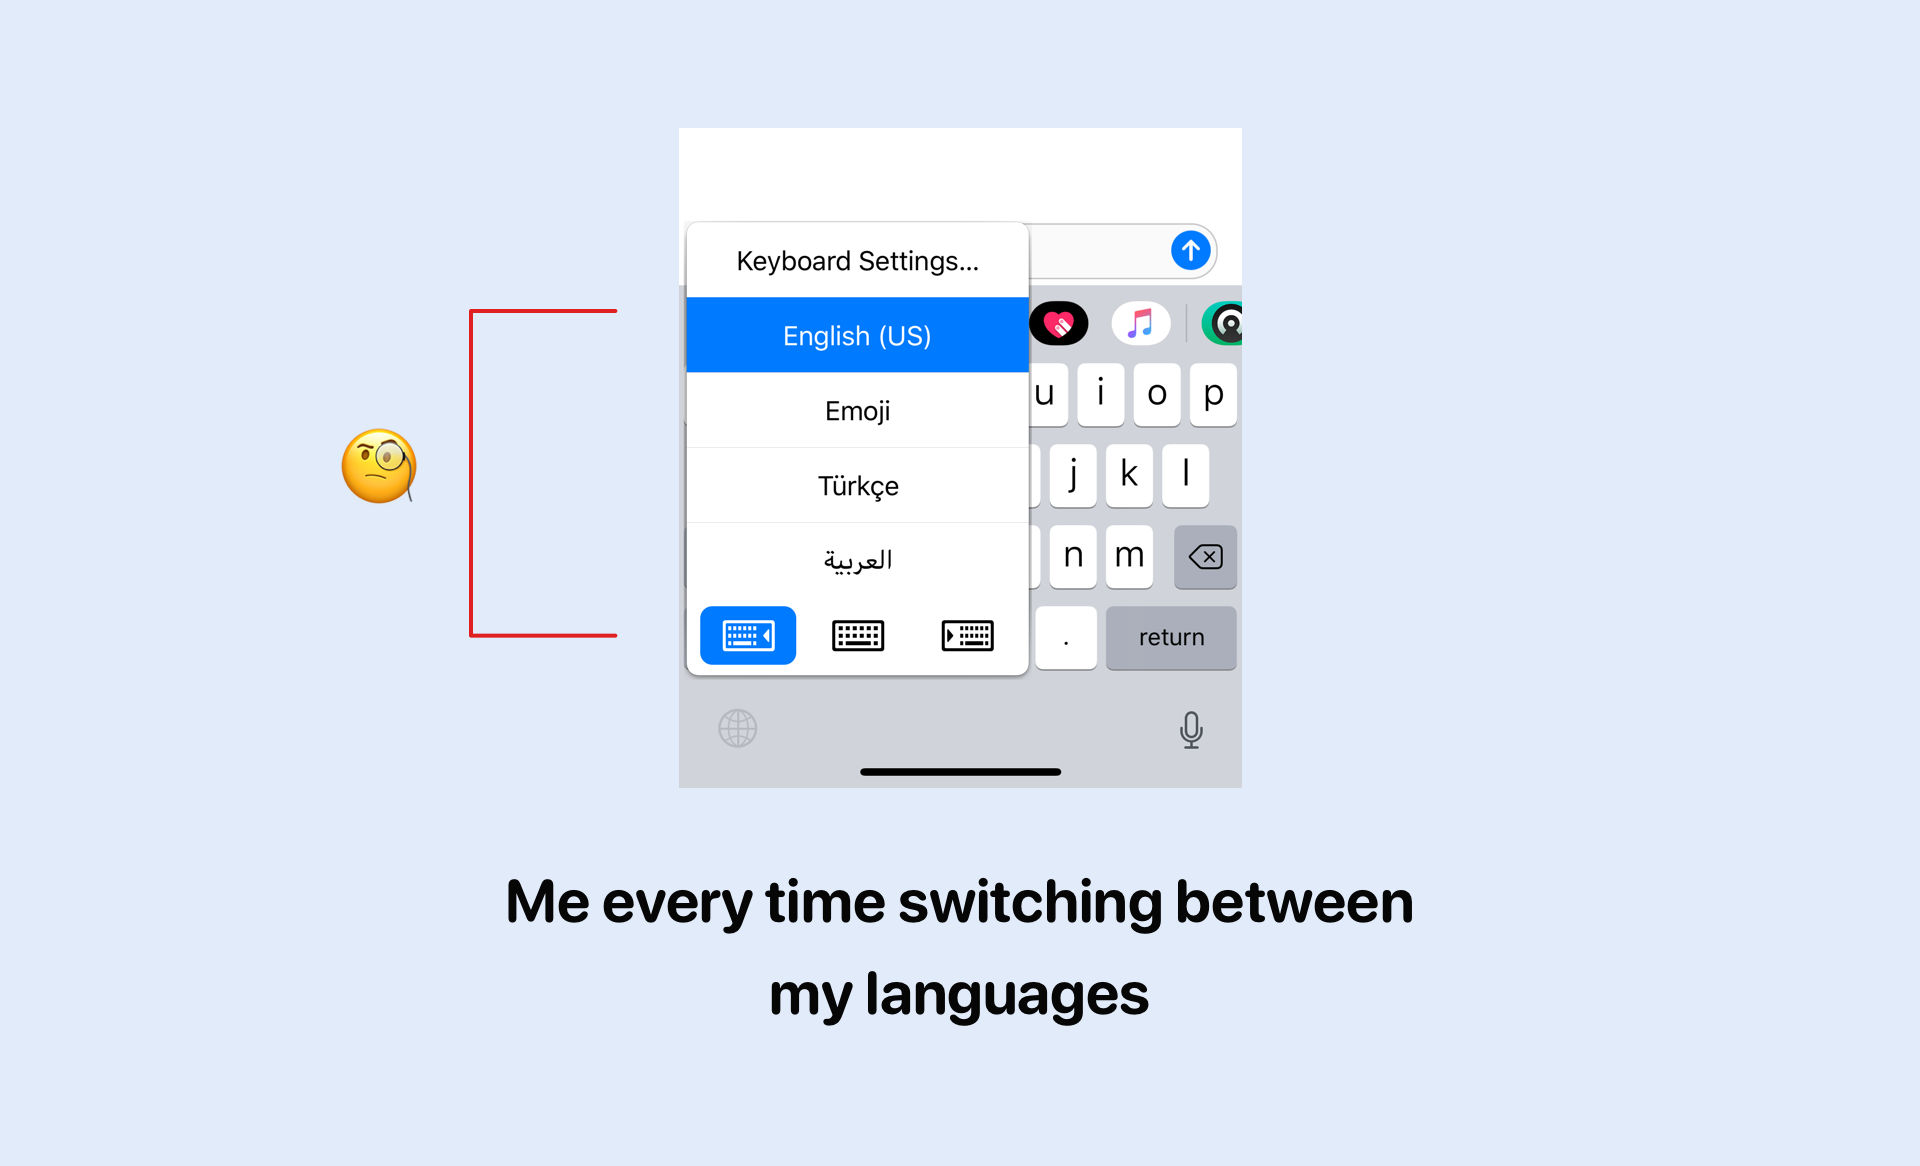 How we can improve emoji typing in iPhone X keyboard — a UX